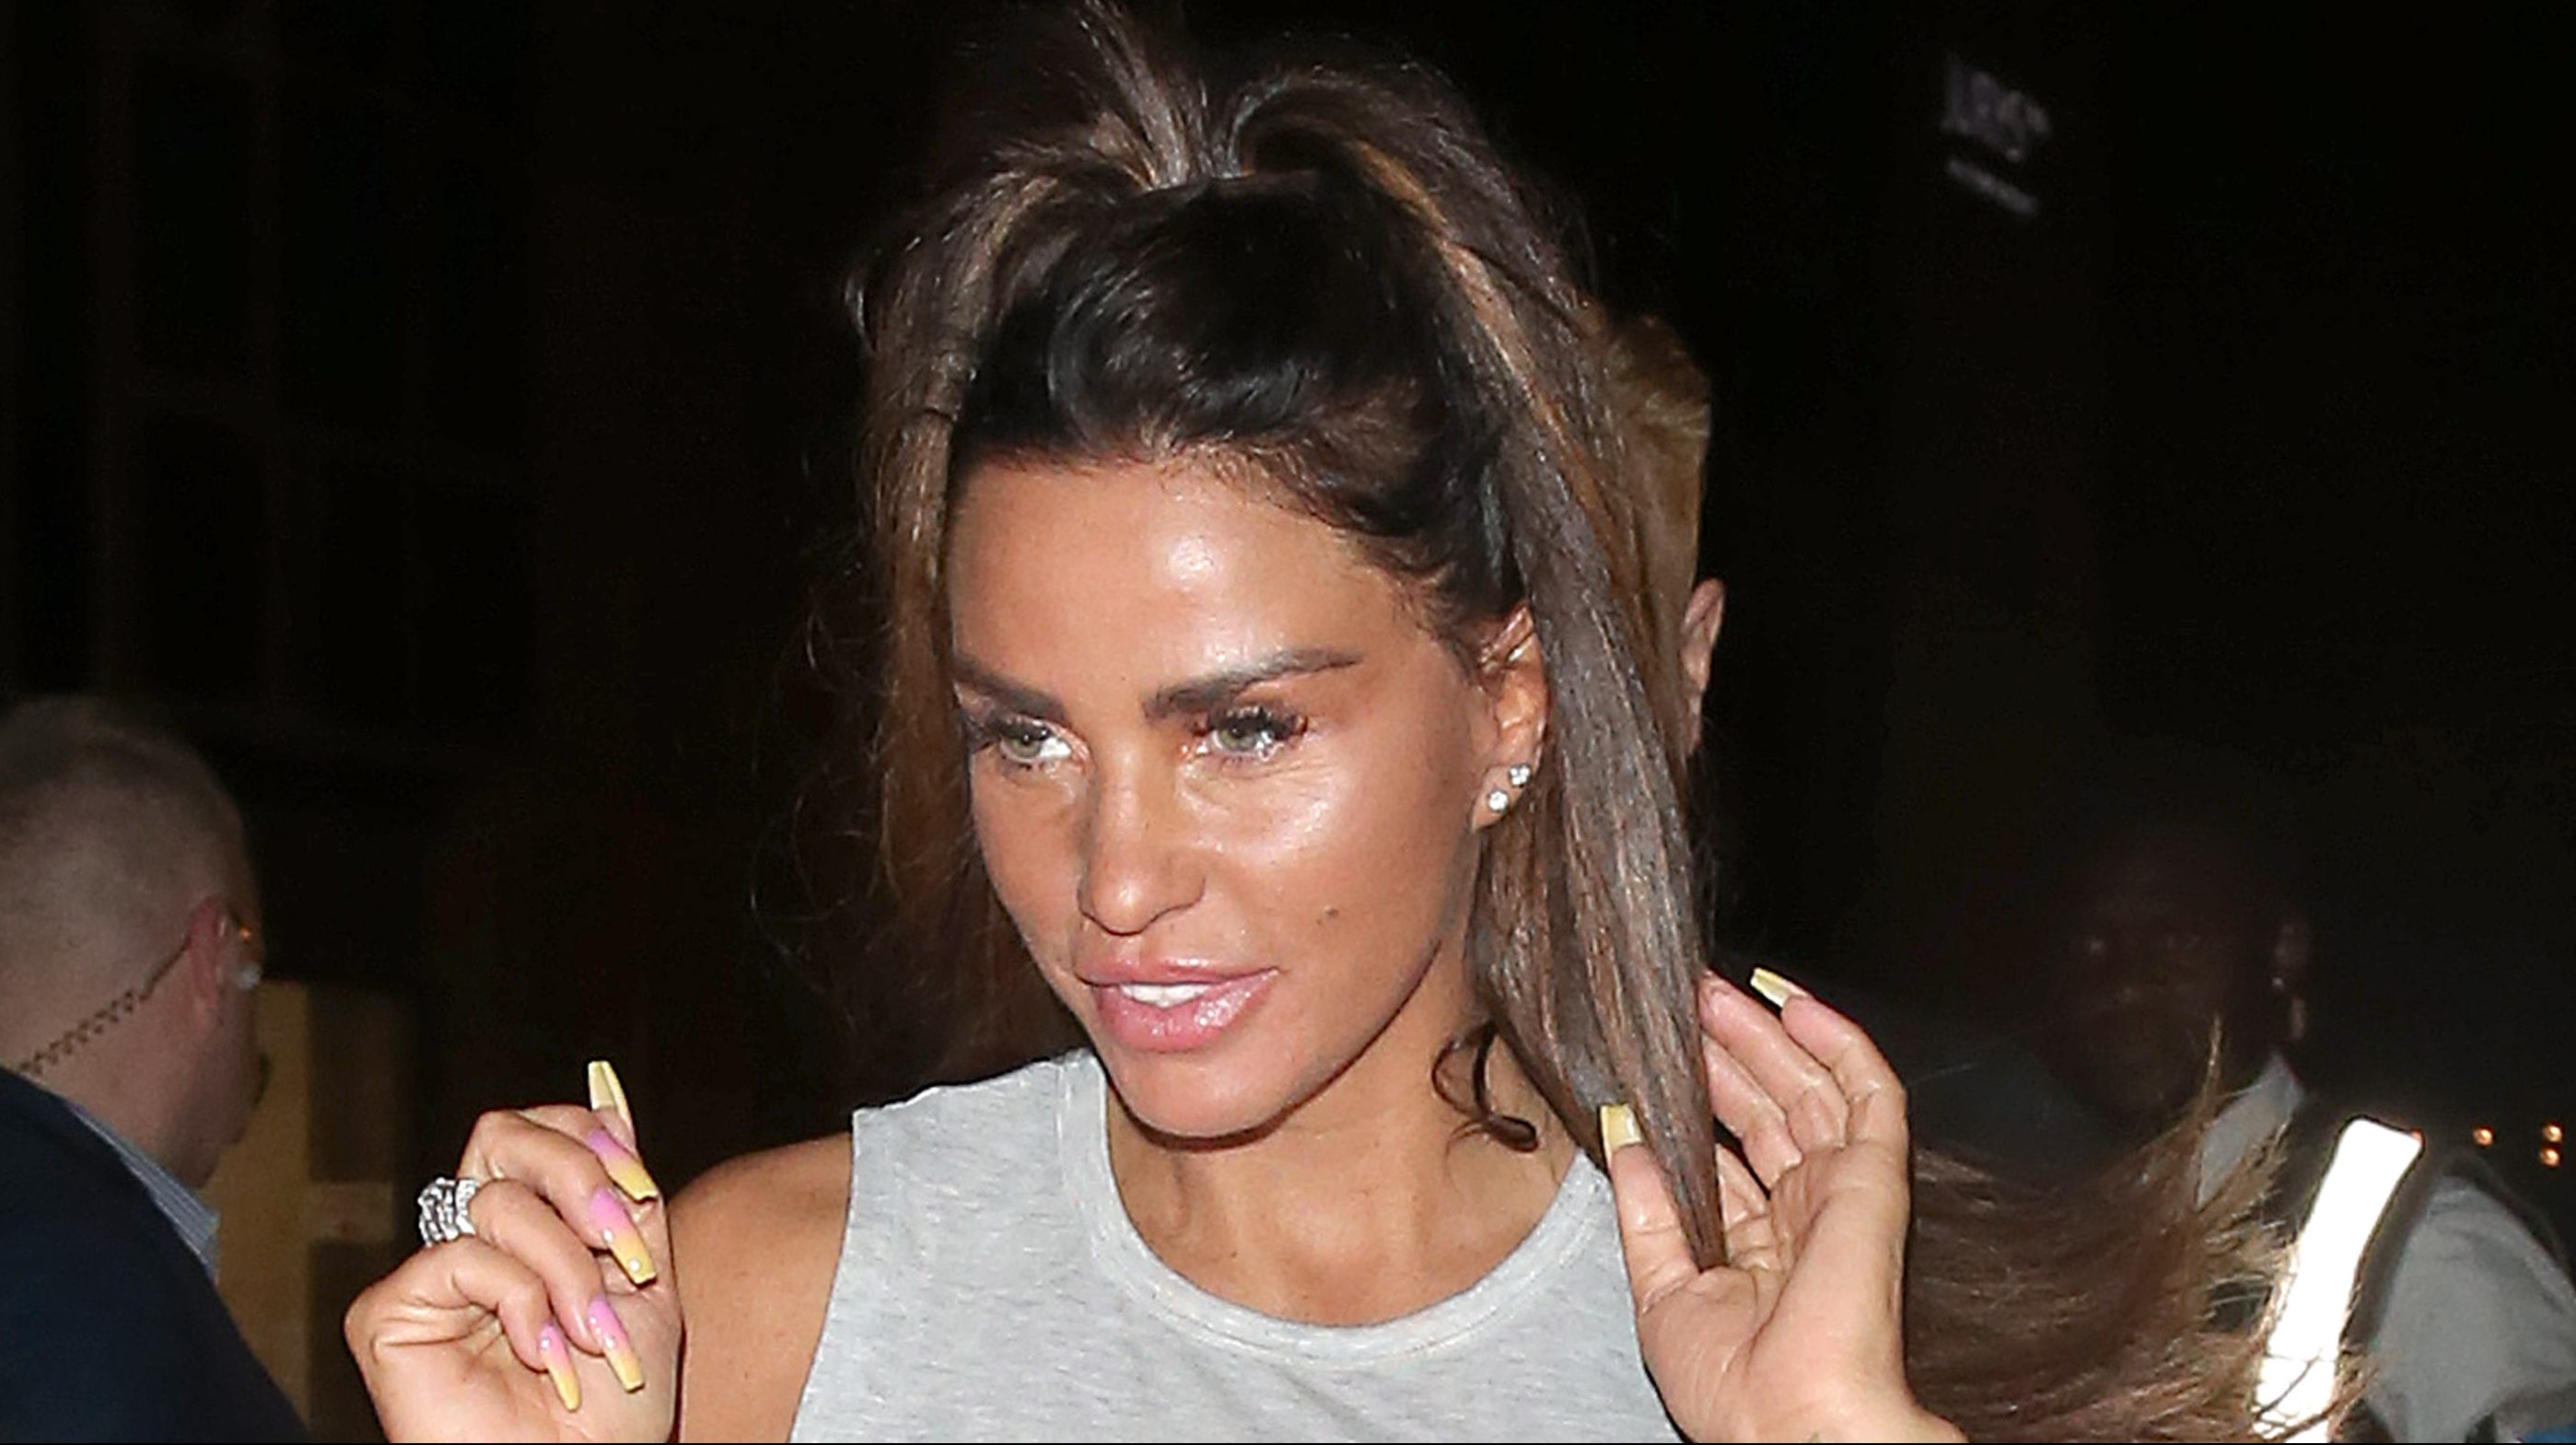 Katie Price 'hasn't seen Jett and Bunny for two weeks and hasn't given them their Christmas presents yet'